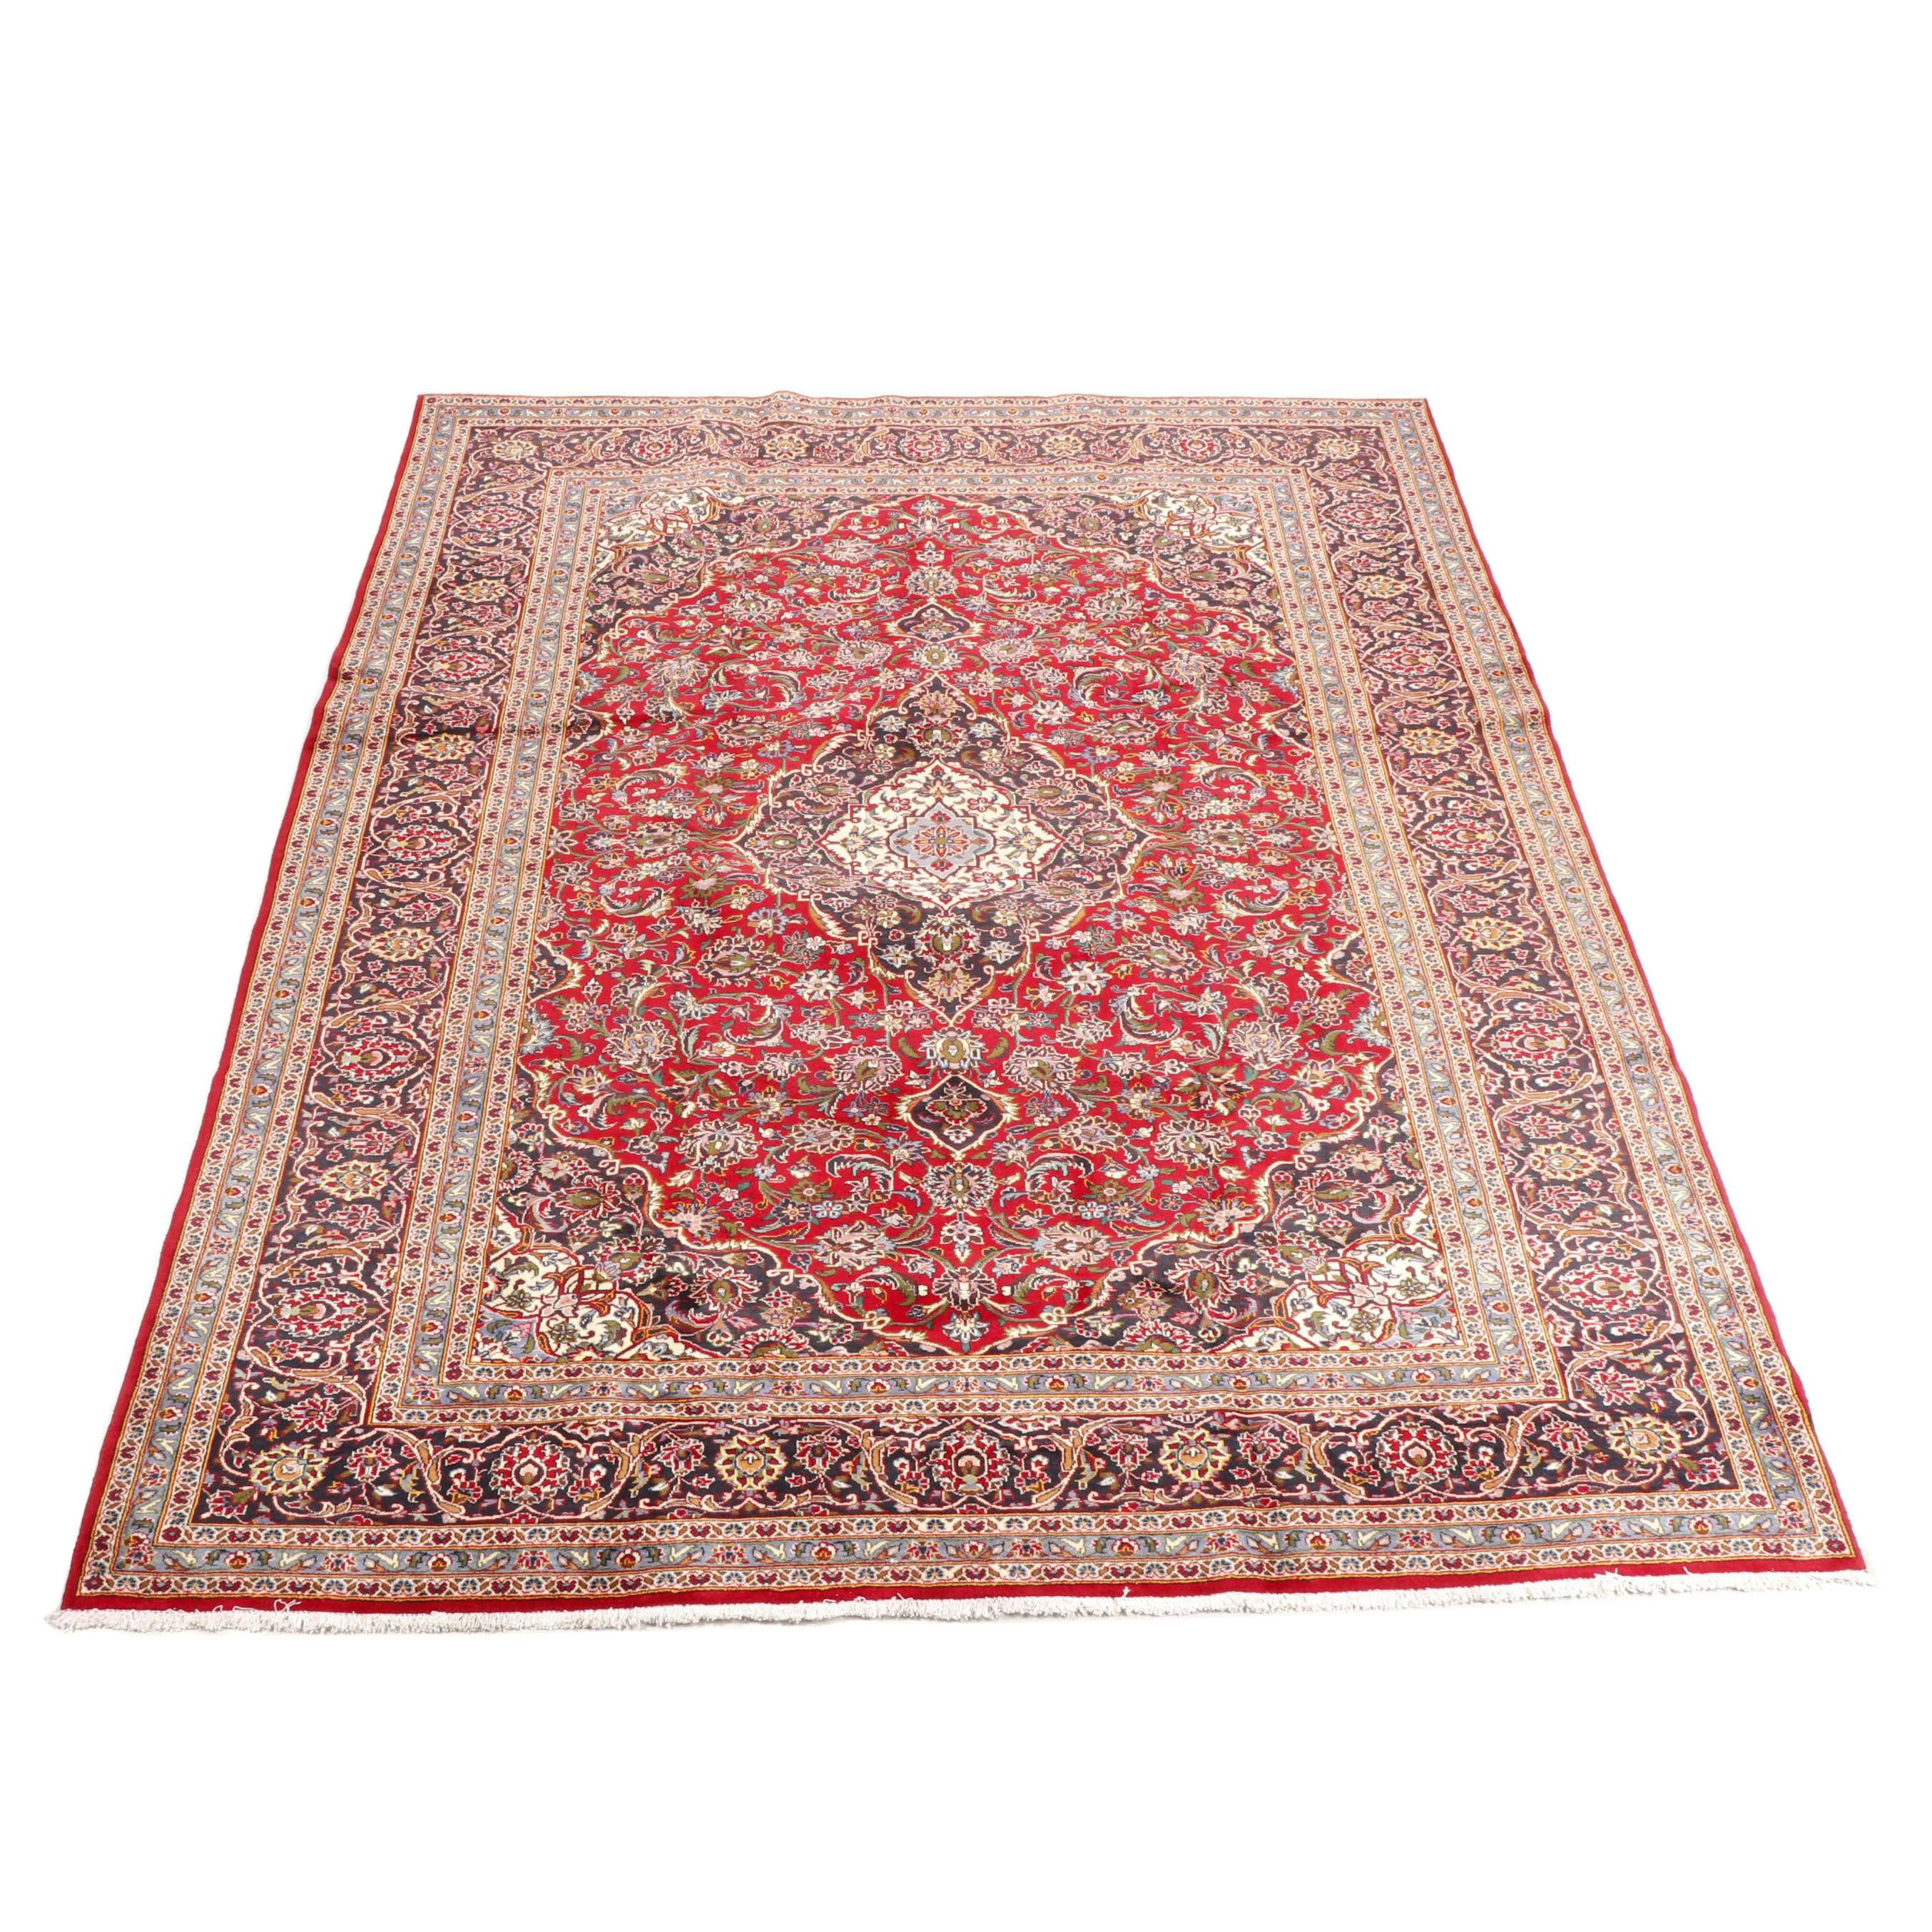 Hand-Knotted Persian Kashan Wool Room Sized Rug